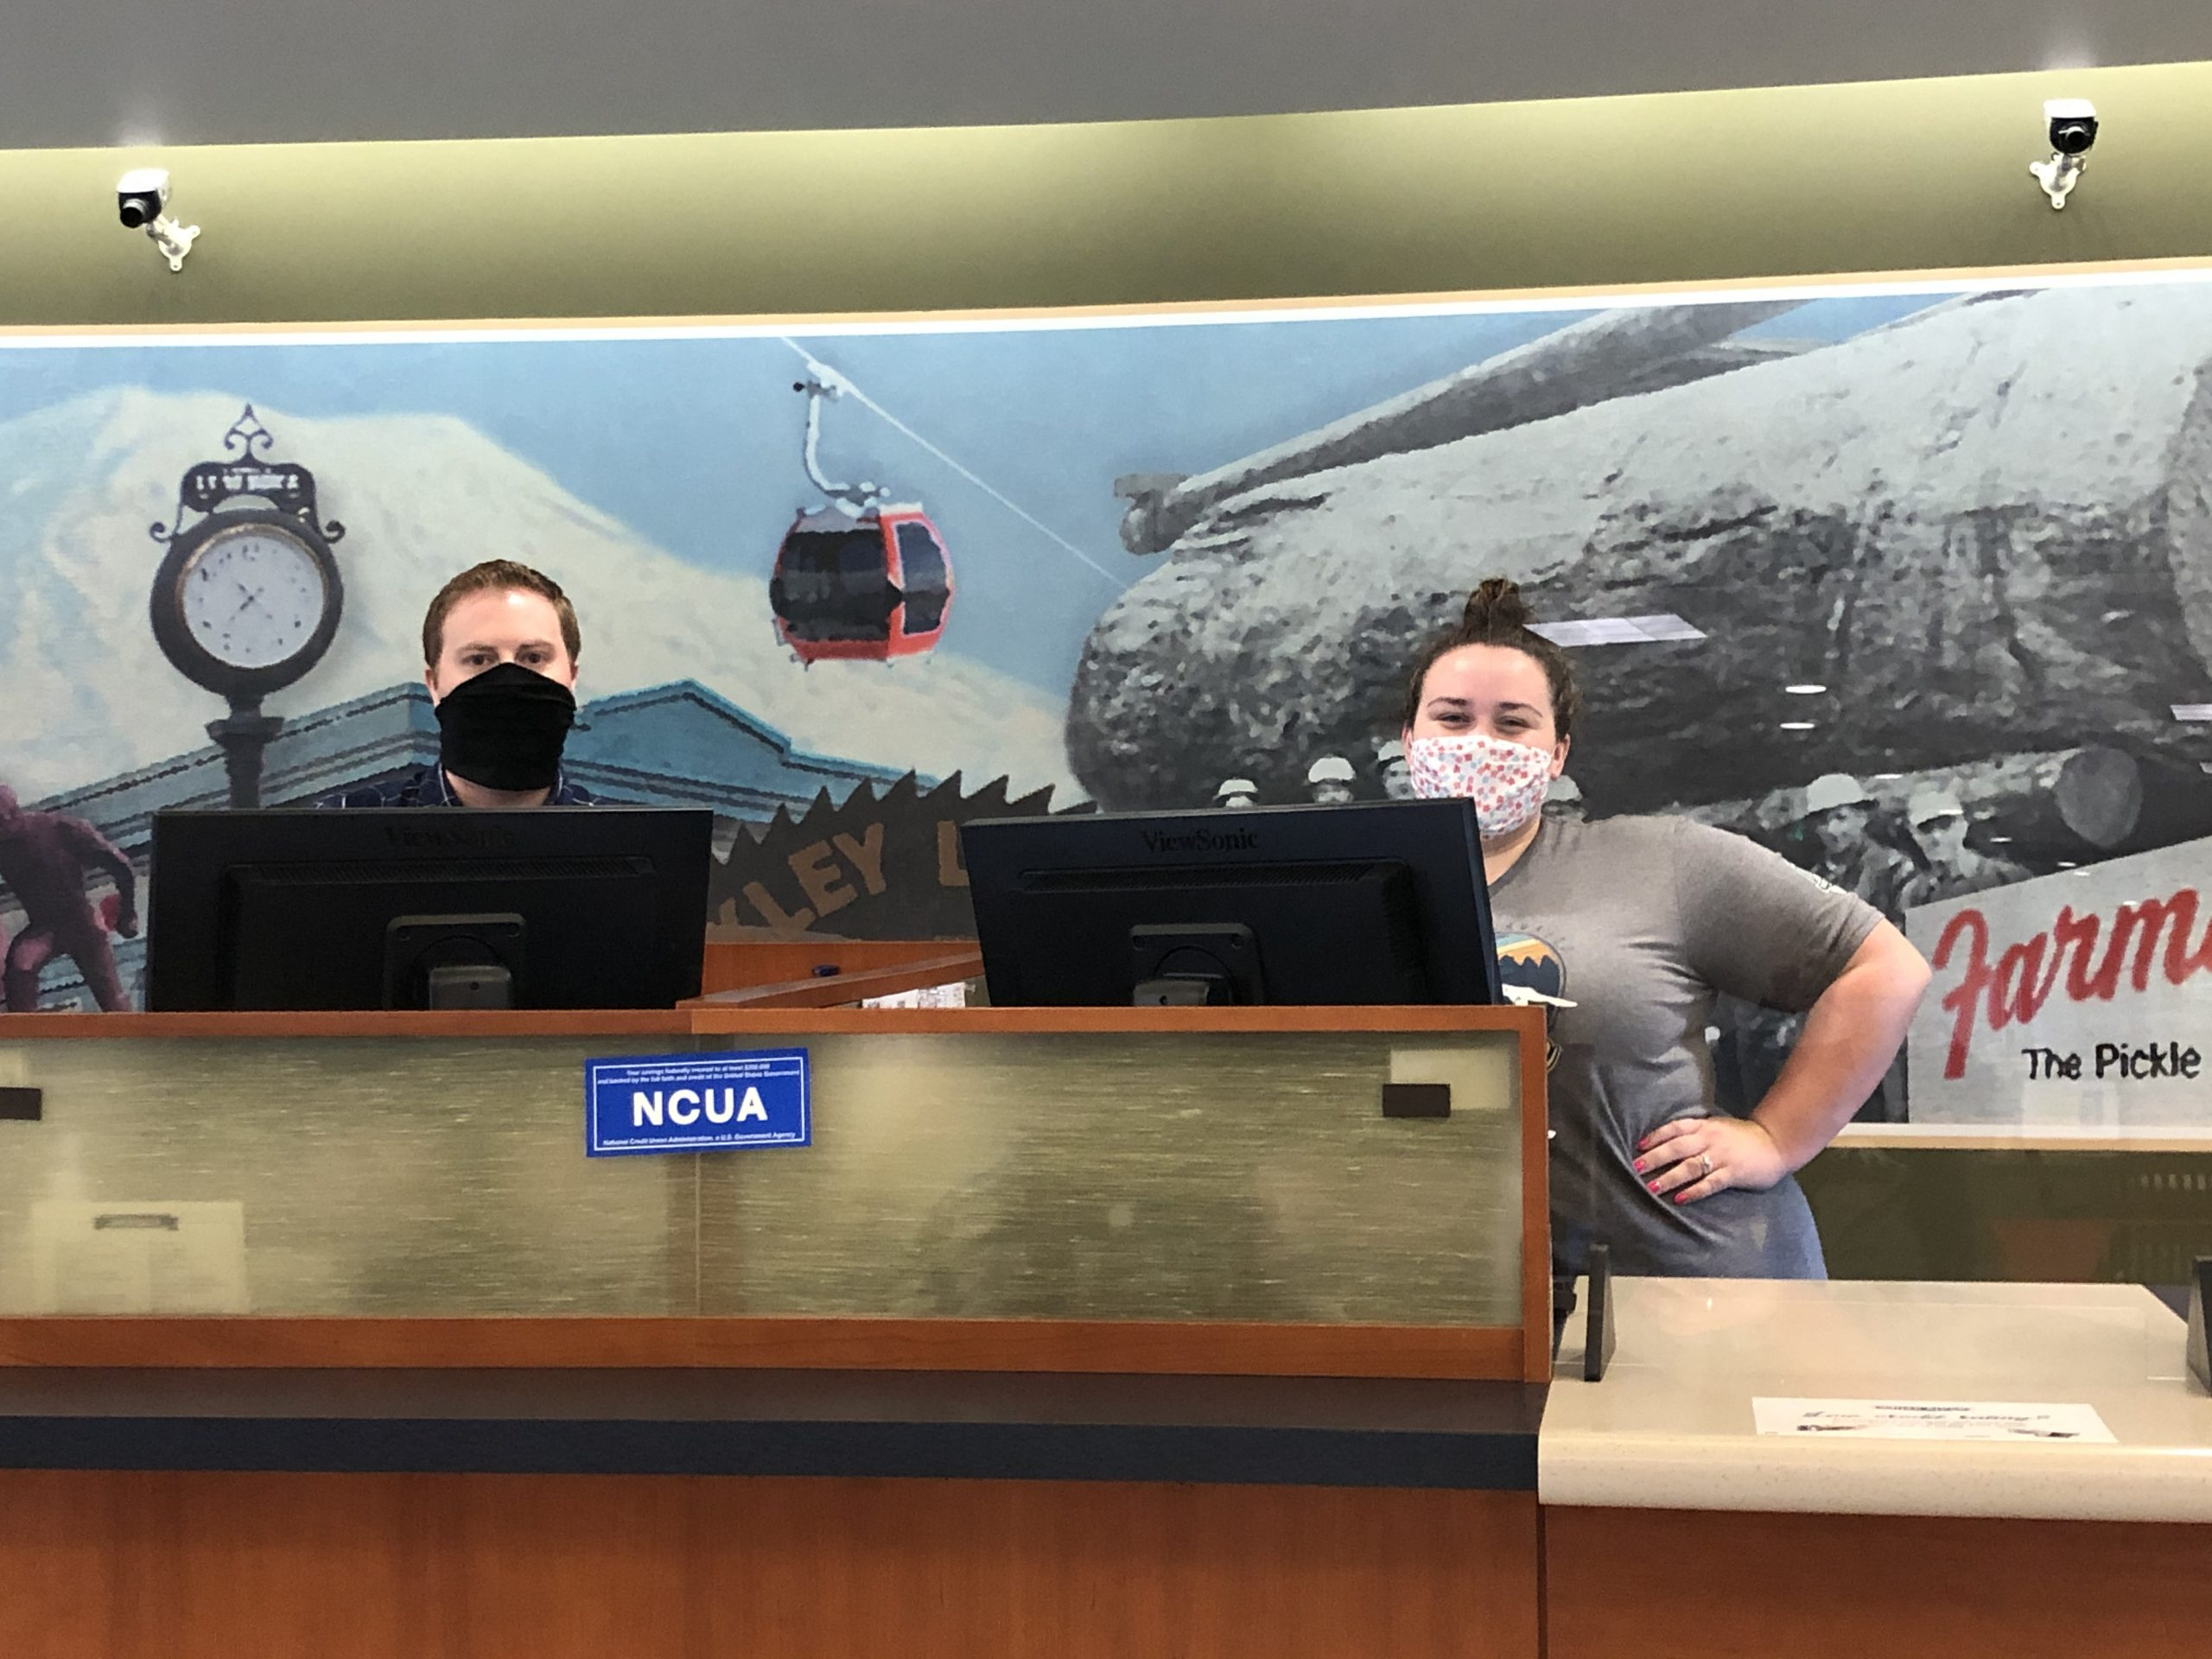 White River Credit Union employees standing behind desk